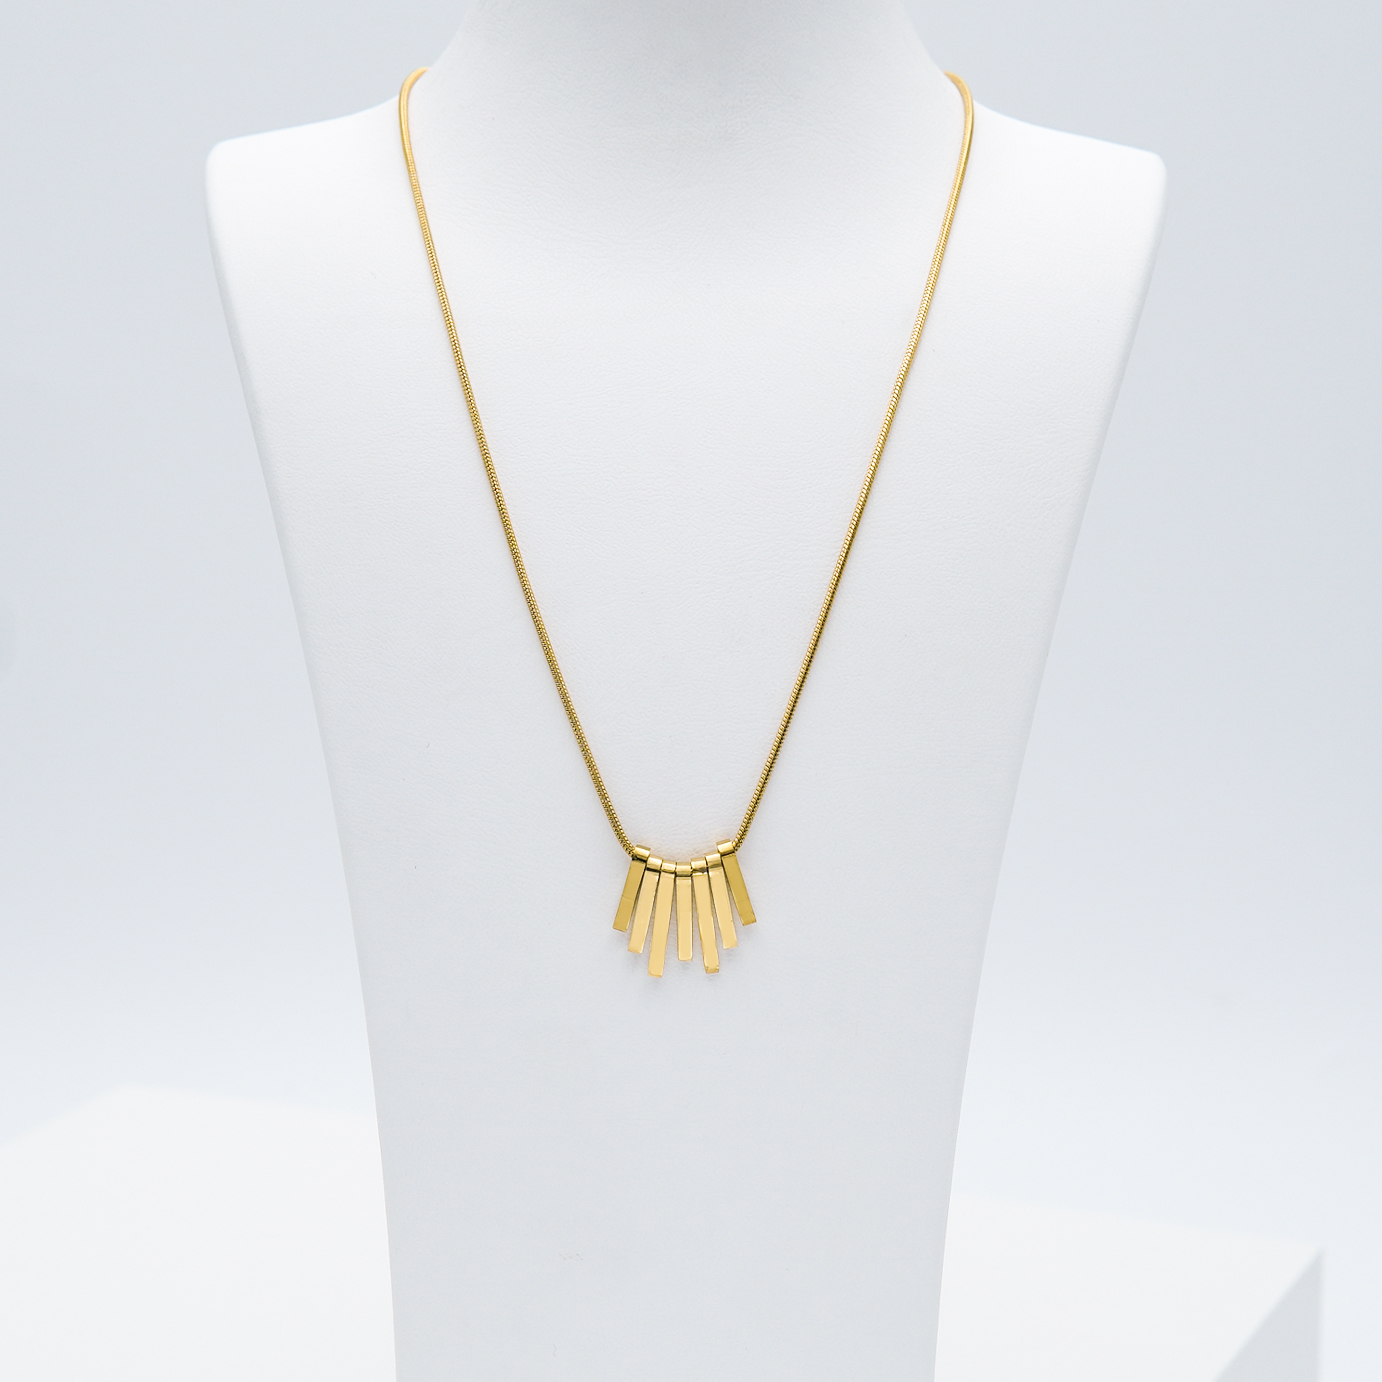 1- Fashionista Dance Edition Halsband Modern and trendy Necklace and women jewelry and accessories from SWEVALI fashion Sweden